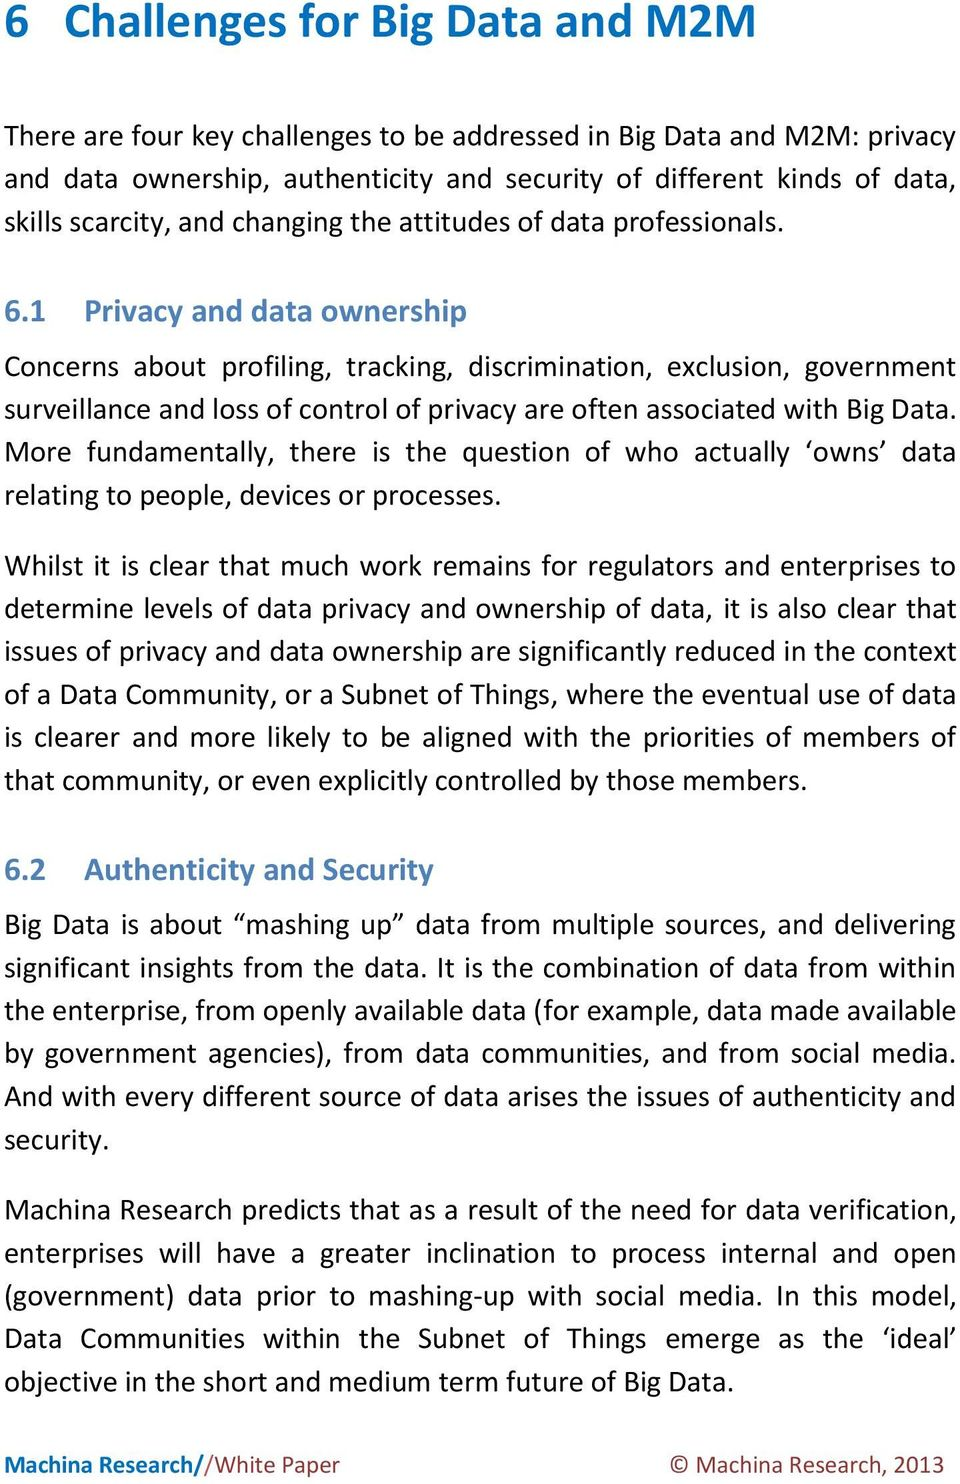 1 Privacy and data ownership Concerns about profiling, tracking, discrimination, exclusion, government surveillance and loss of control of privacy are often associated with Big Data.